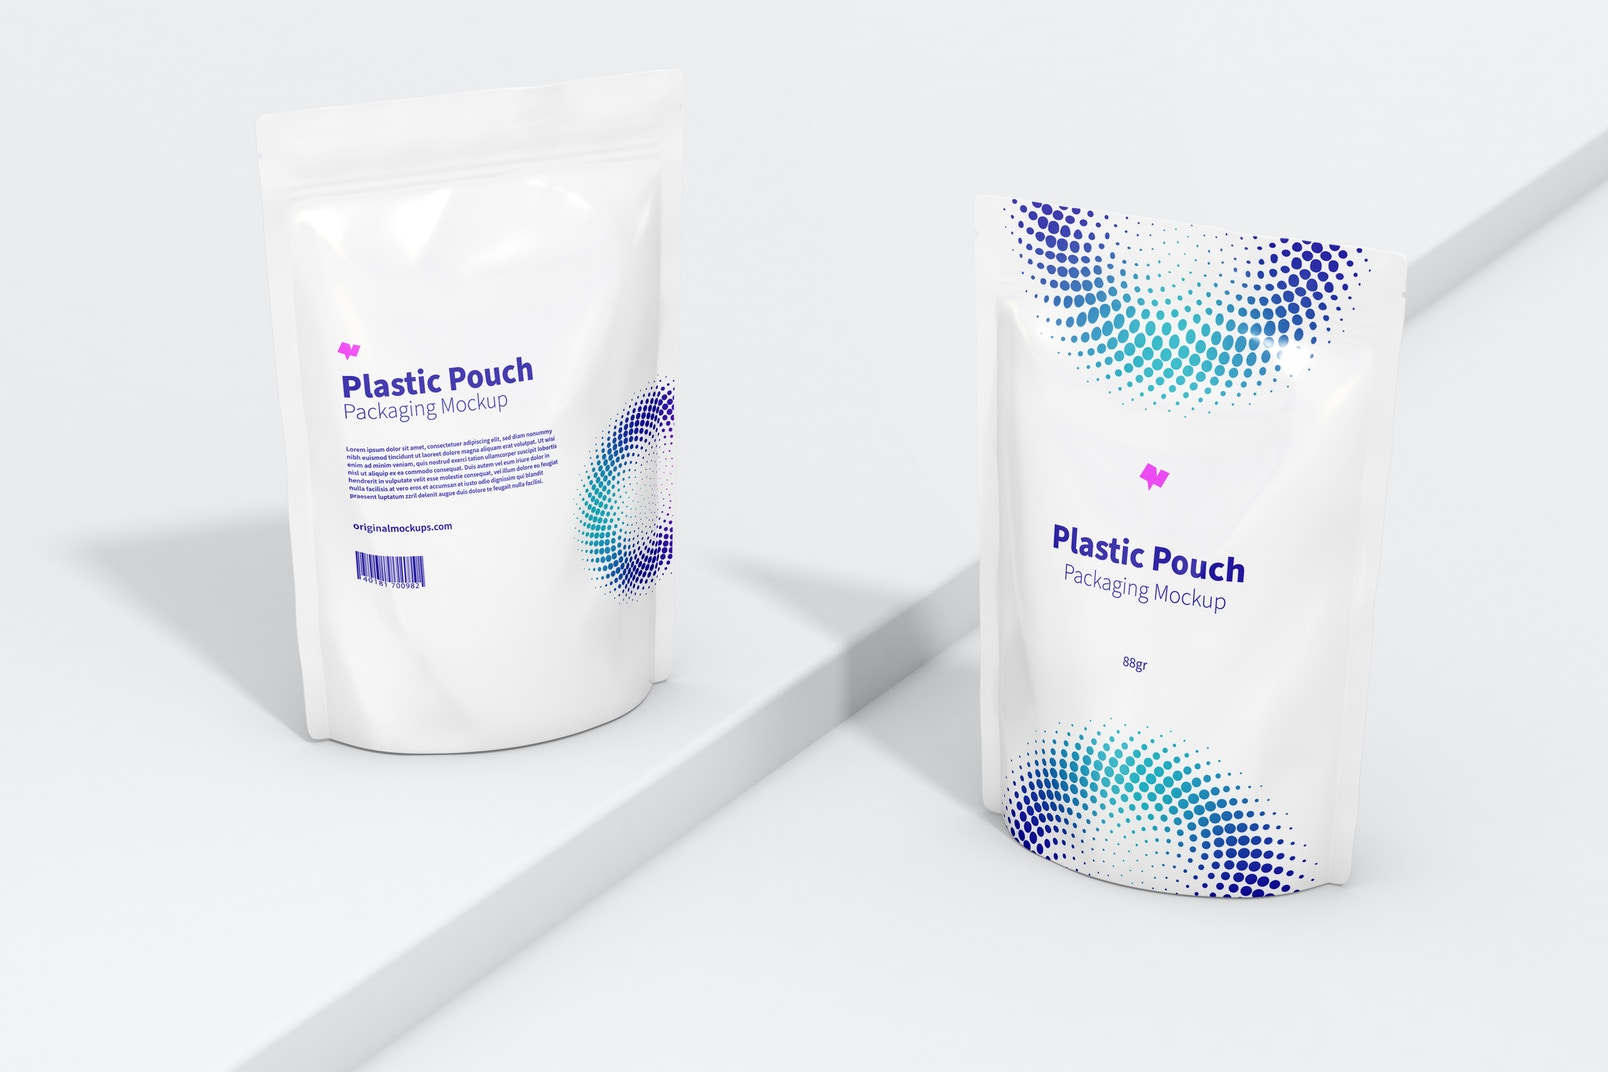 Plastic Pouches Packaging Mockup, Perspective View